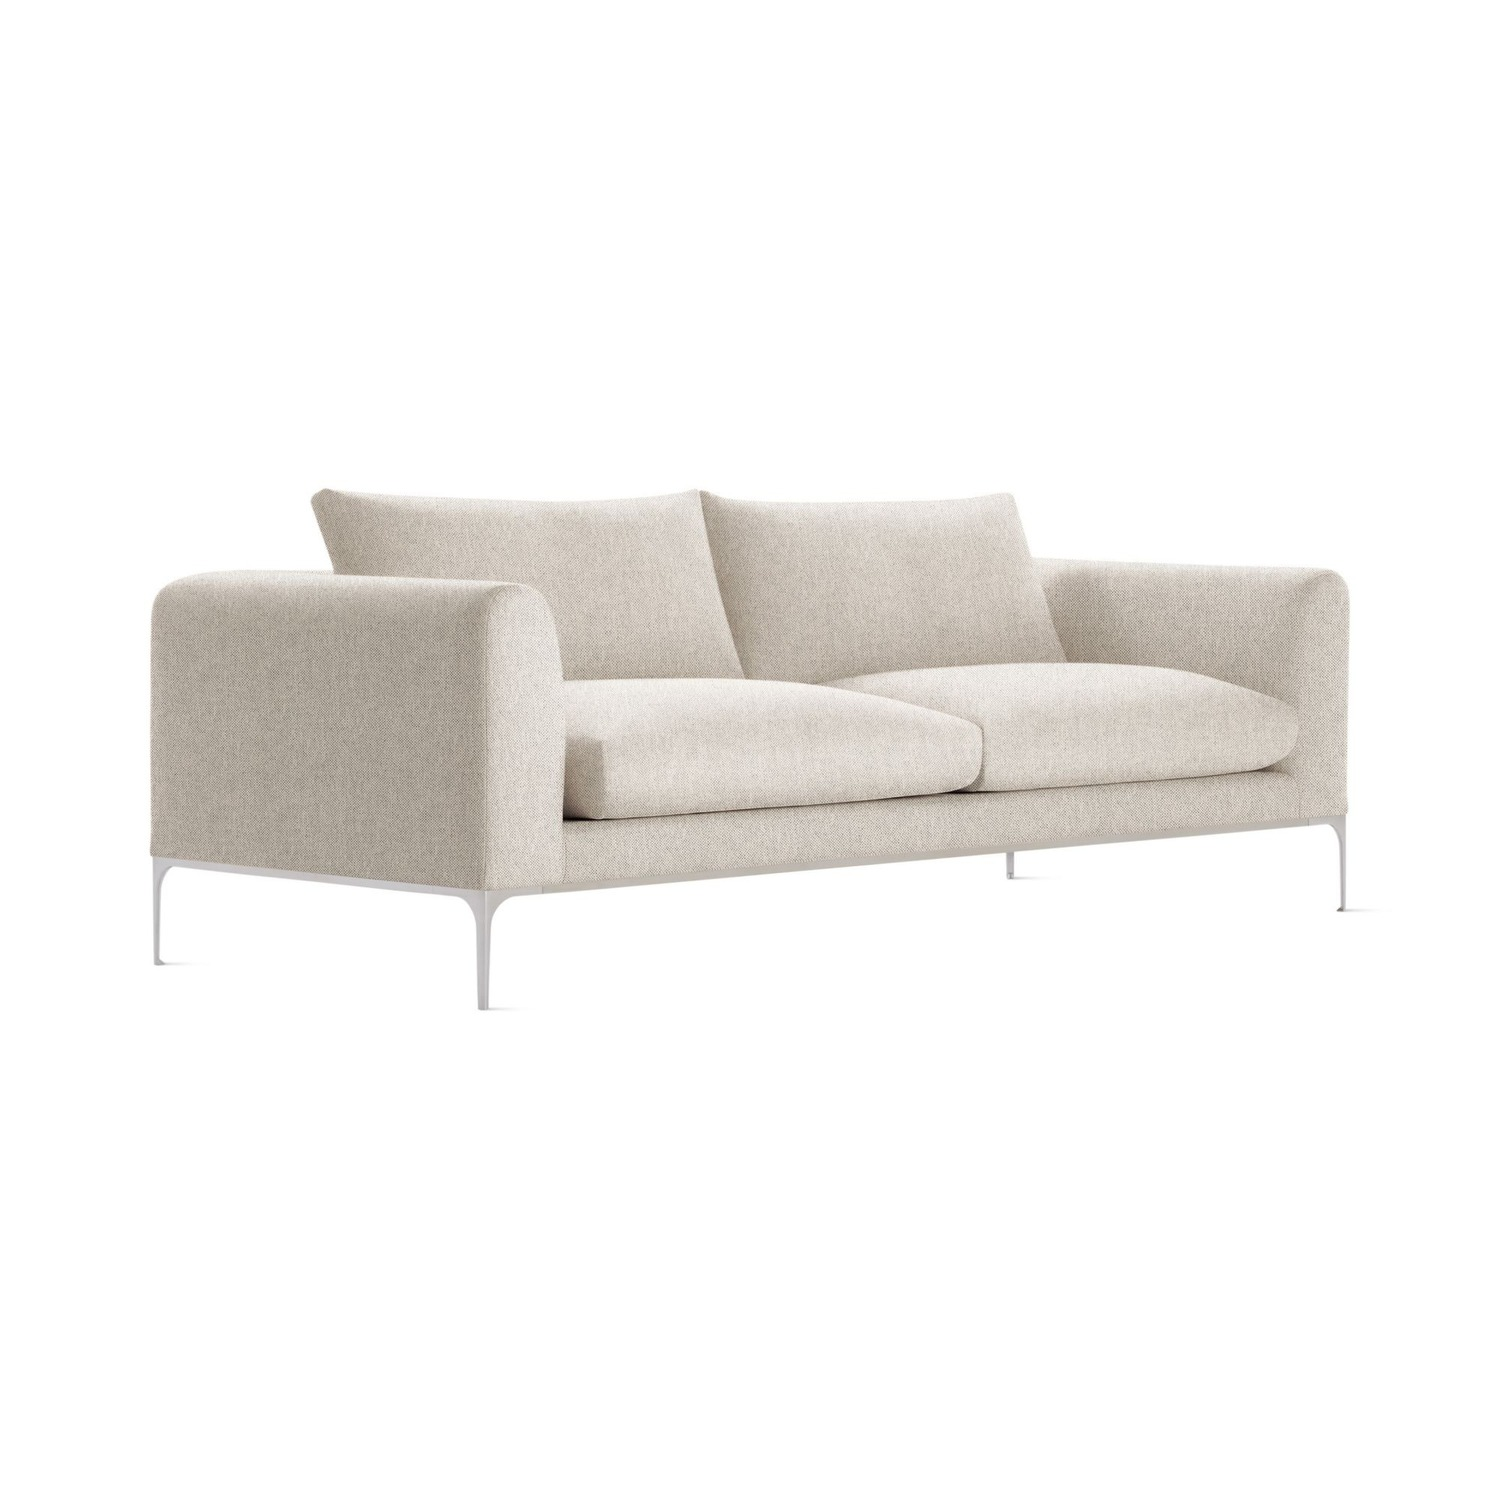 Beautiful DWR Couch - image-2